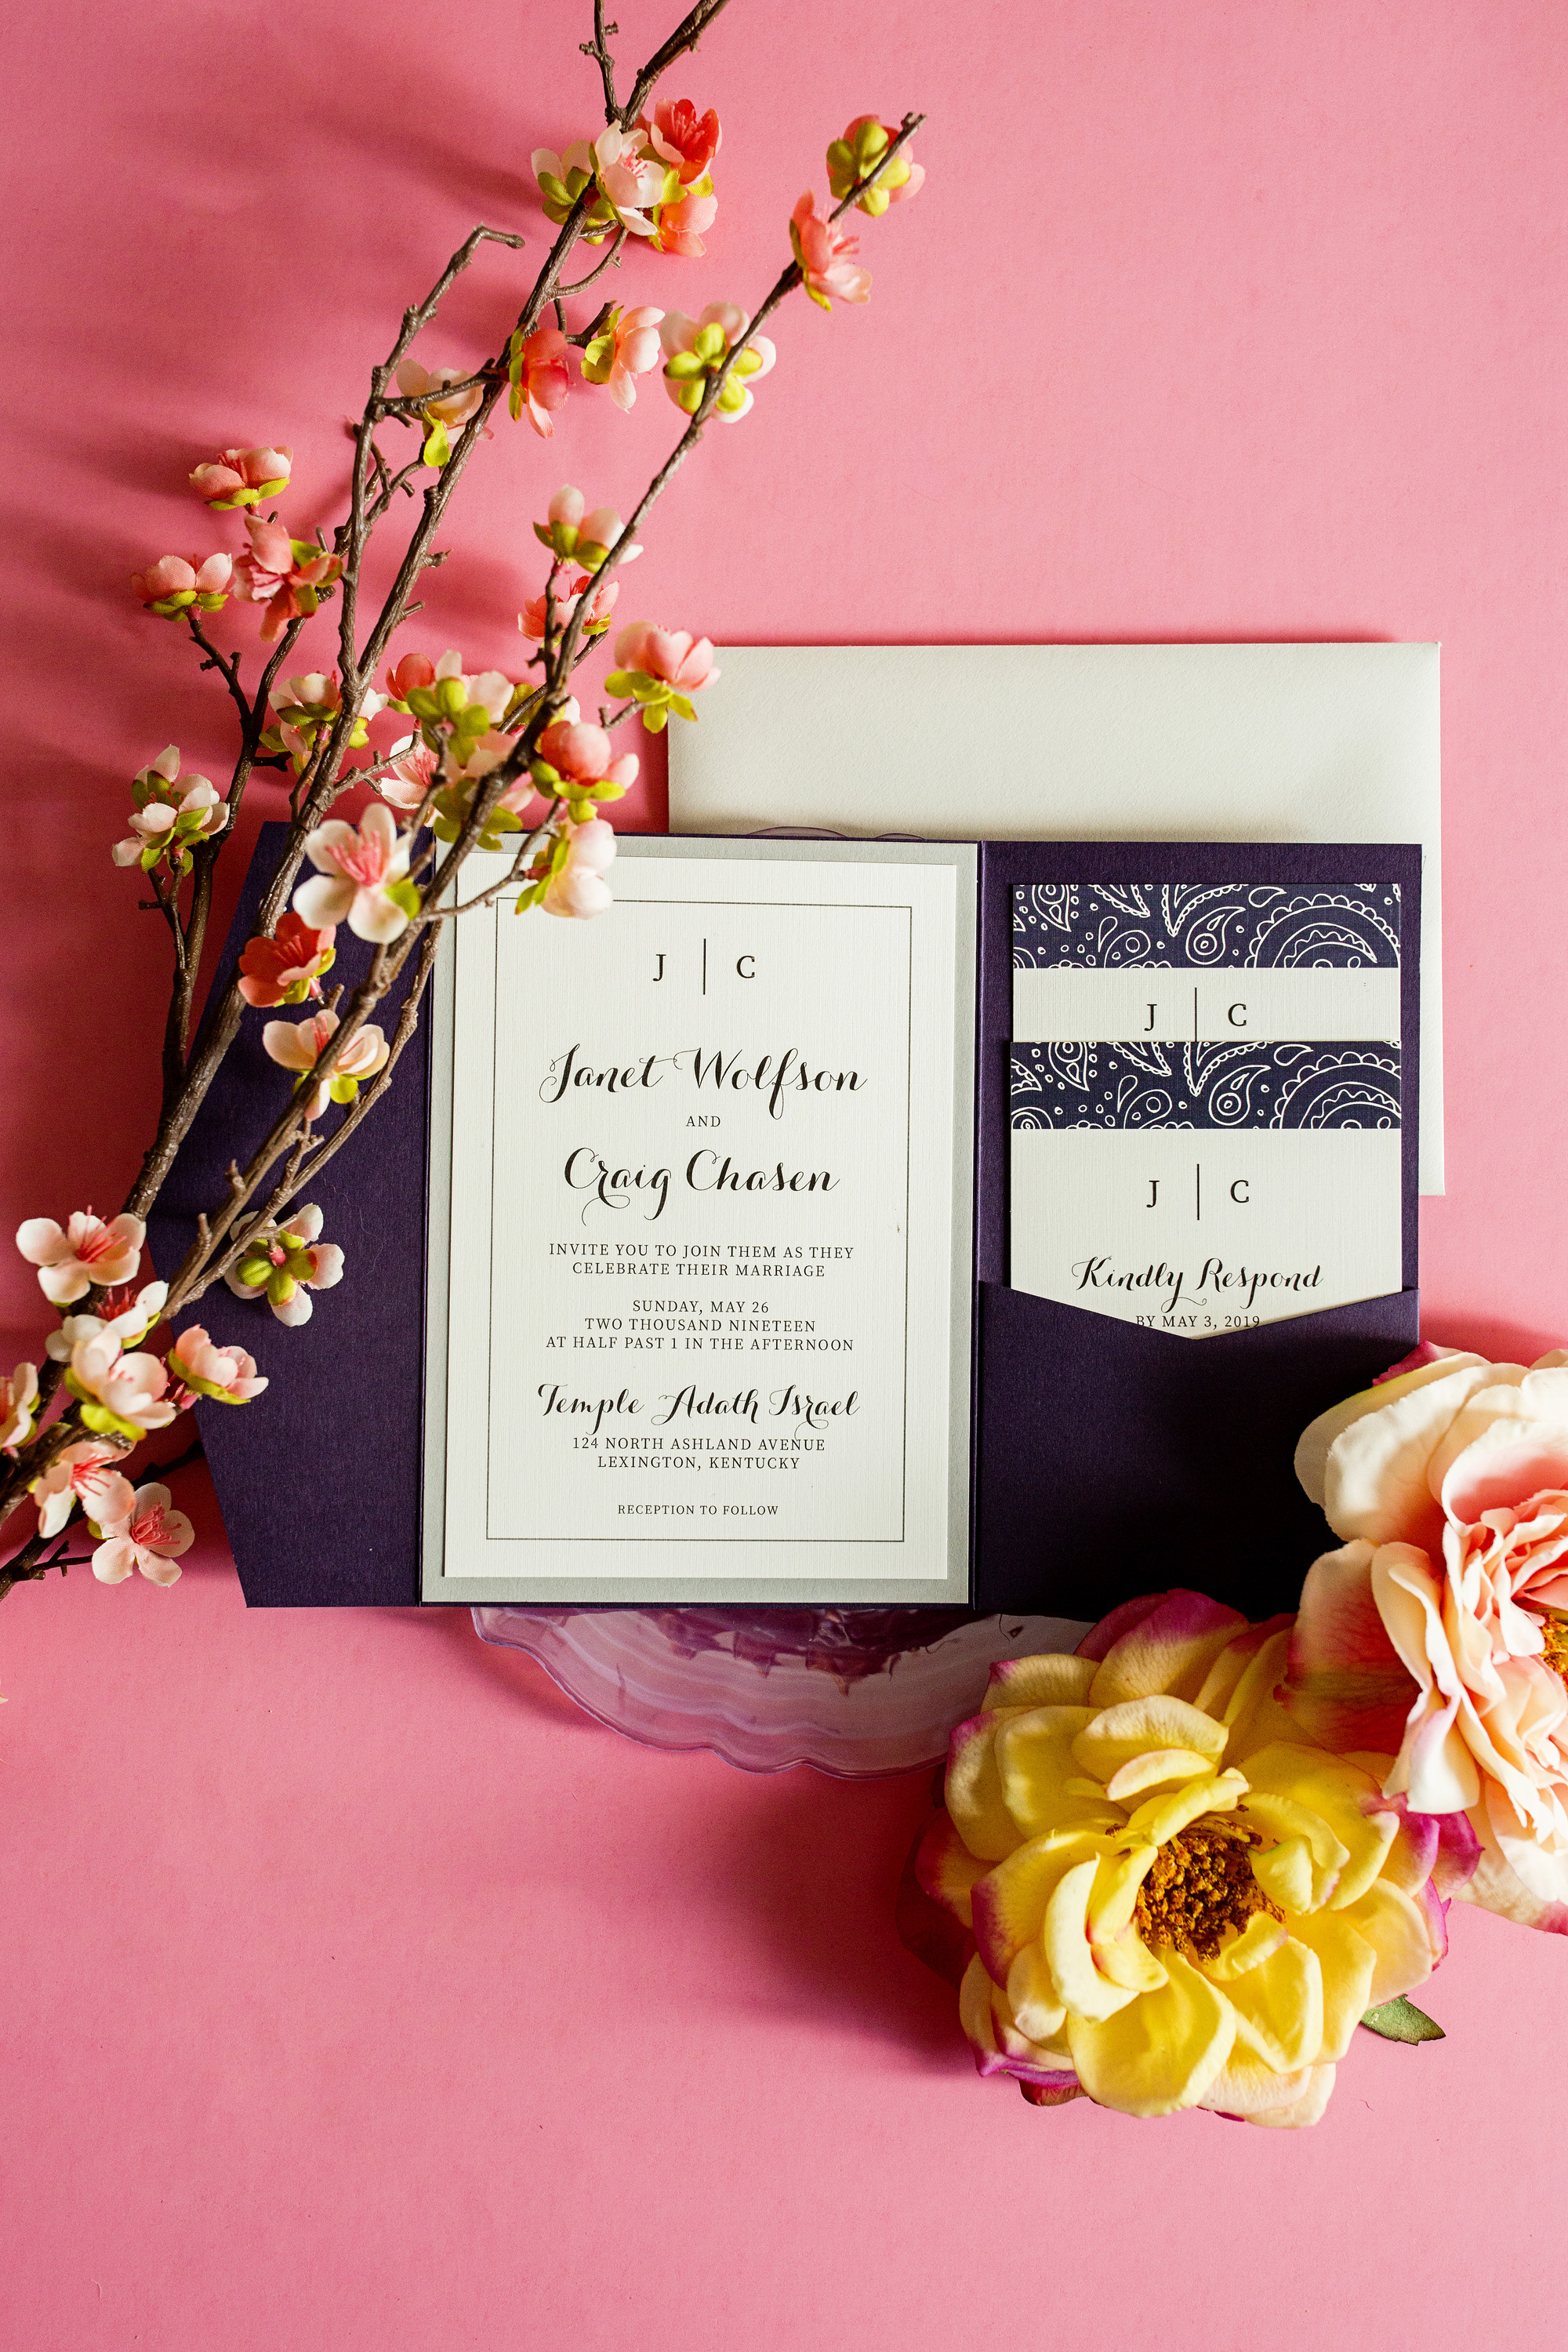 Seriously_Sabrina_Photography_Commercial_Simply_Done_Invites_2019_March_141